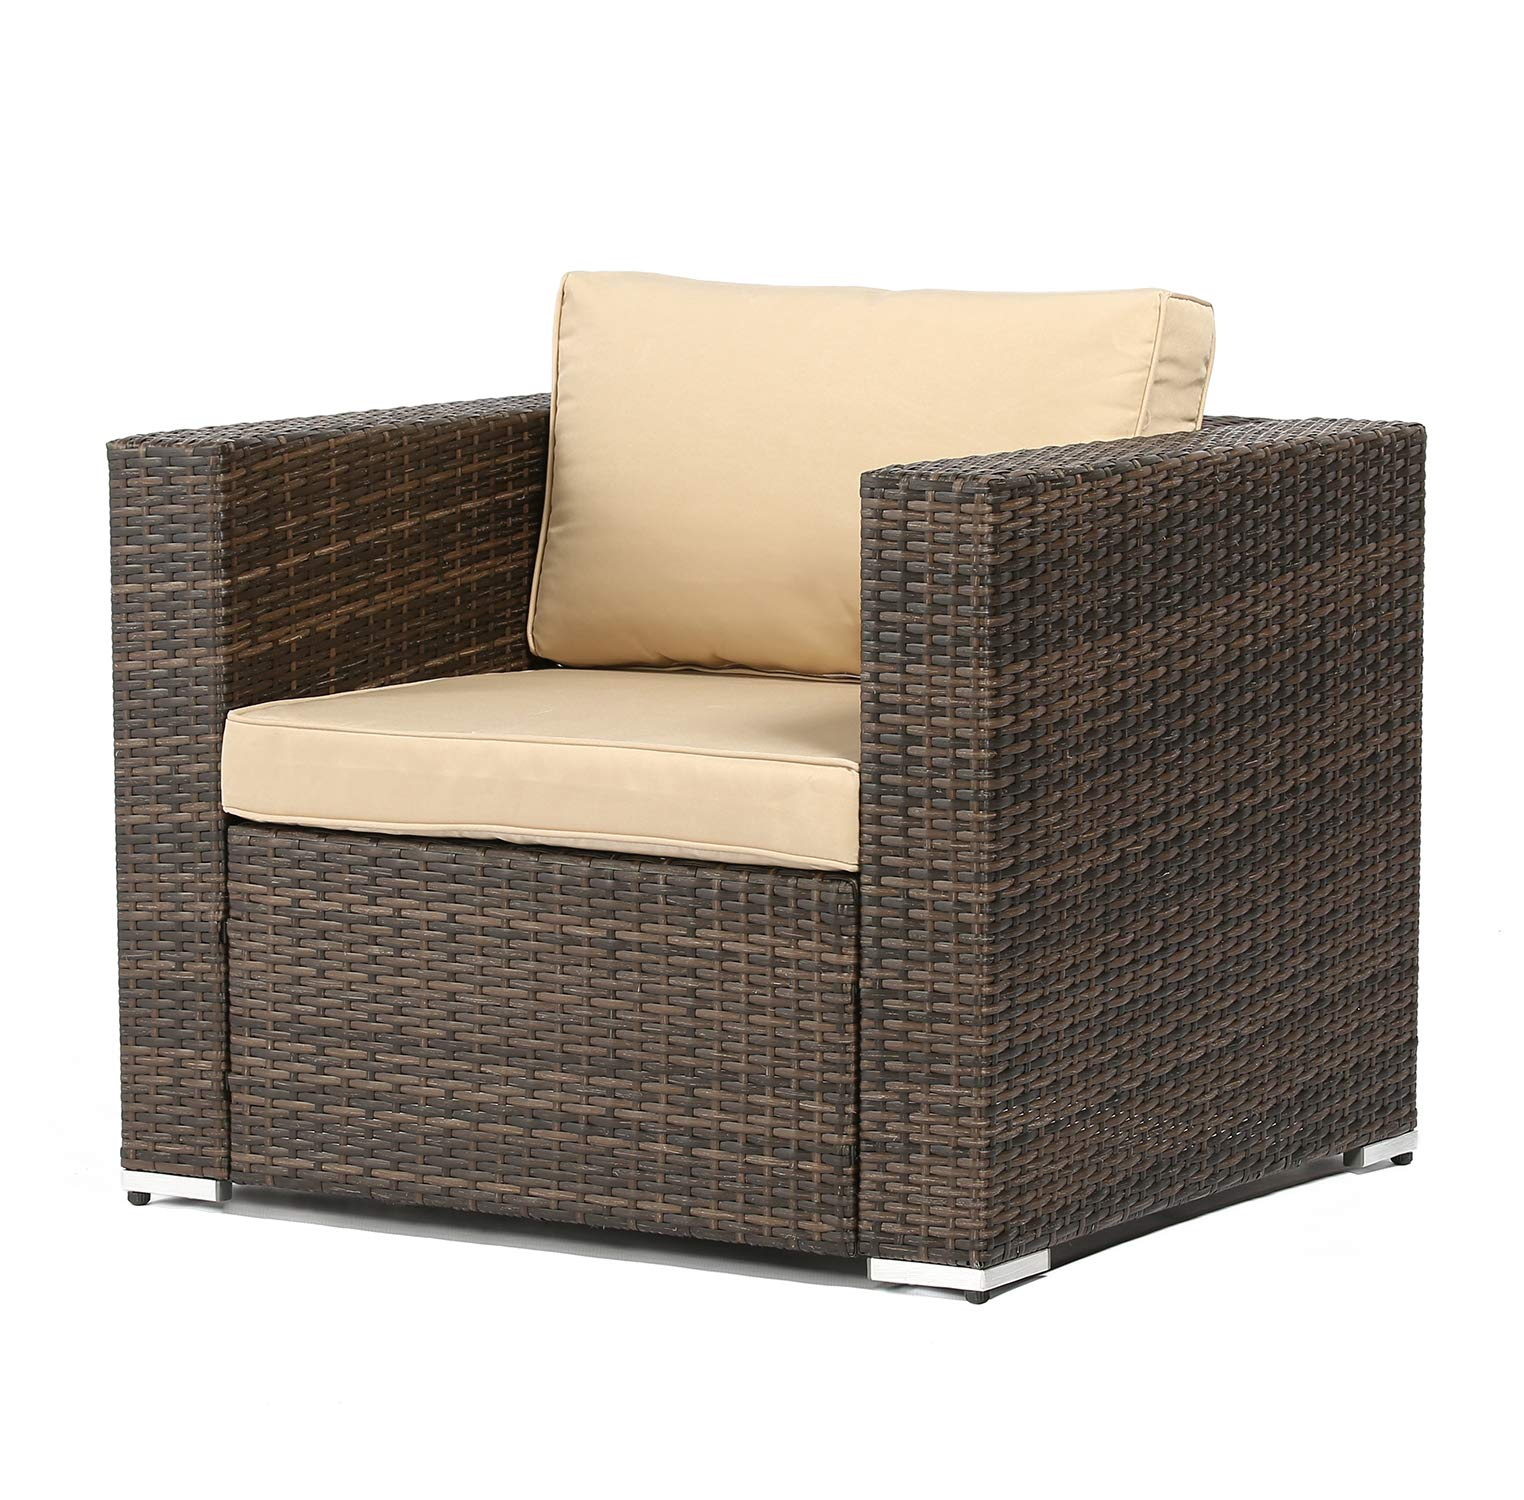 SUNCROWN Outdoor Furniture All Weather Brown Checkered Wicker Sofa Chair | Additional Chair for 4-Piece Sets | Patio, Backyard, Pool | Machine Washable Cushion Covers